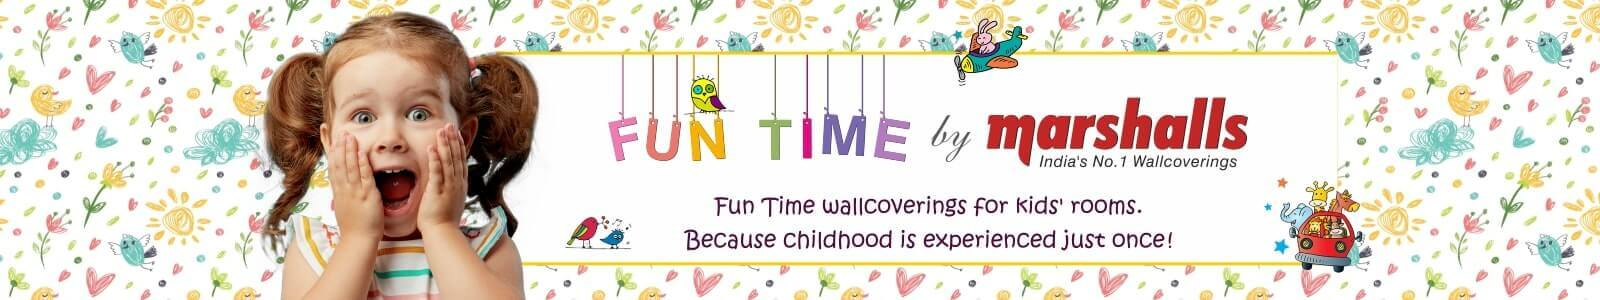 Wallpaper Kids Room | Best Quality HD Children, Teens, Girls, Boys Bedroom Fun Time & 3D Wallpaper for Wall